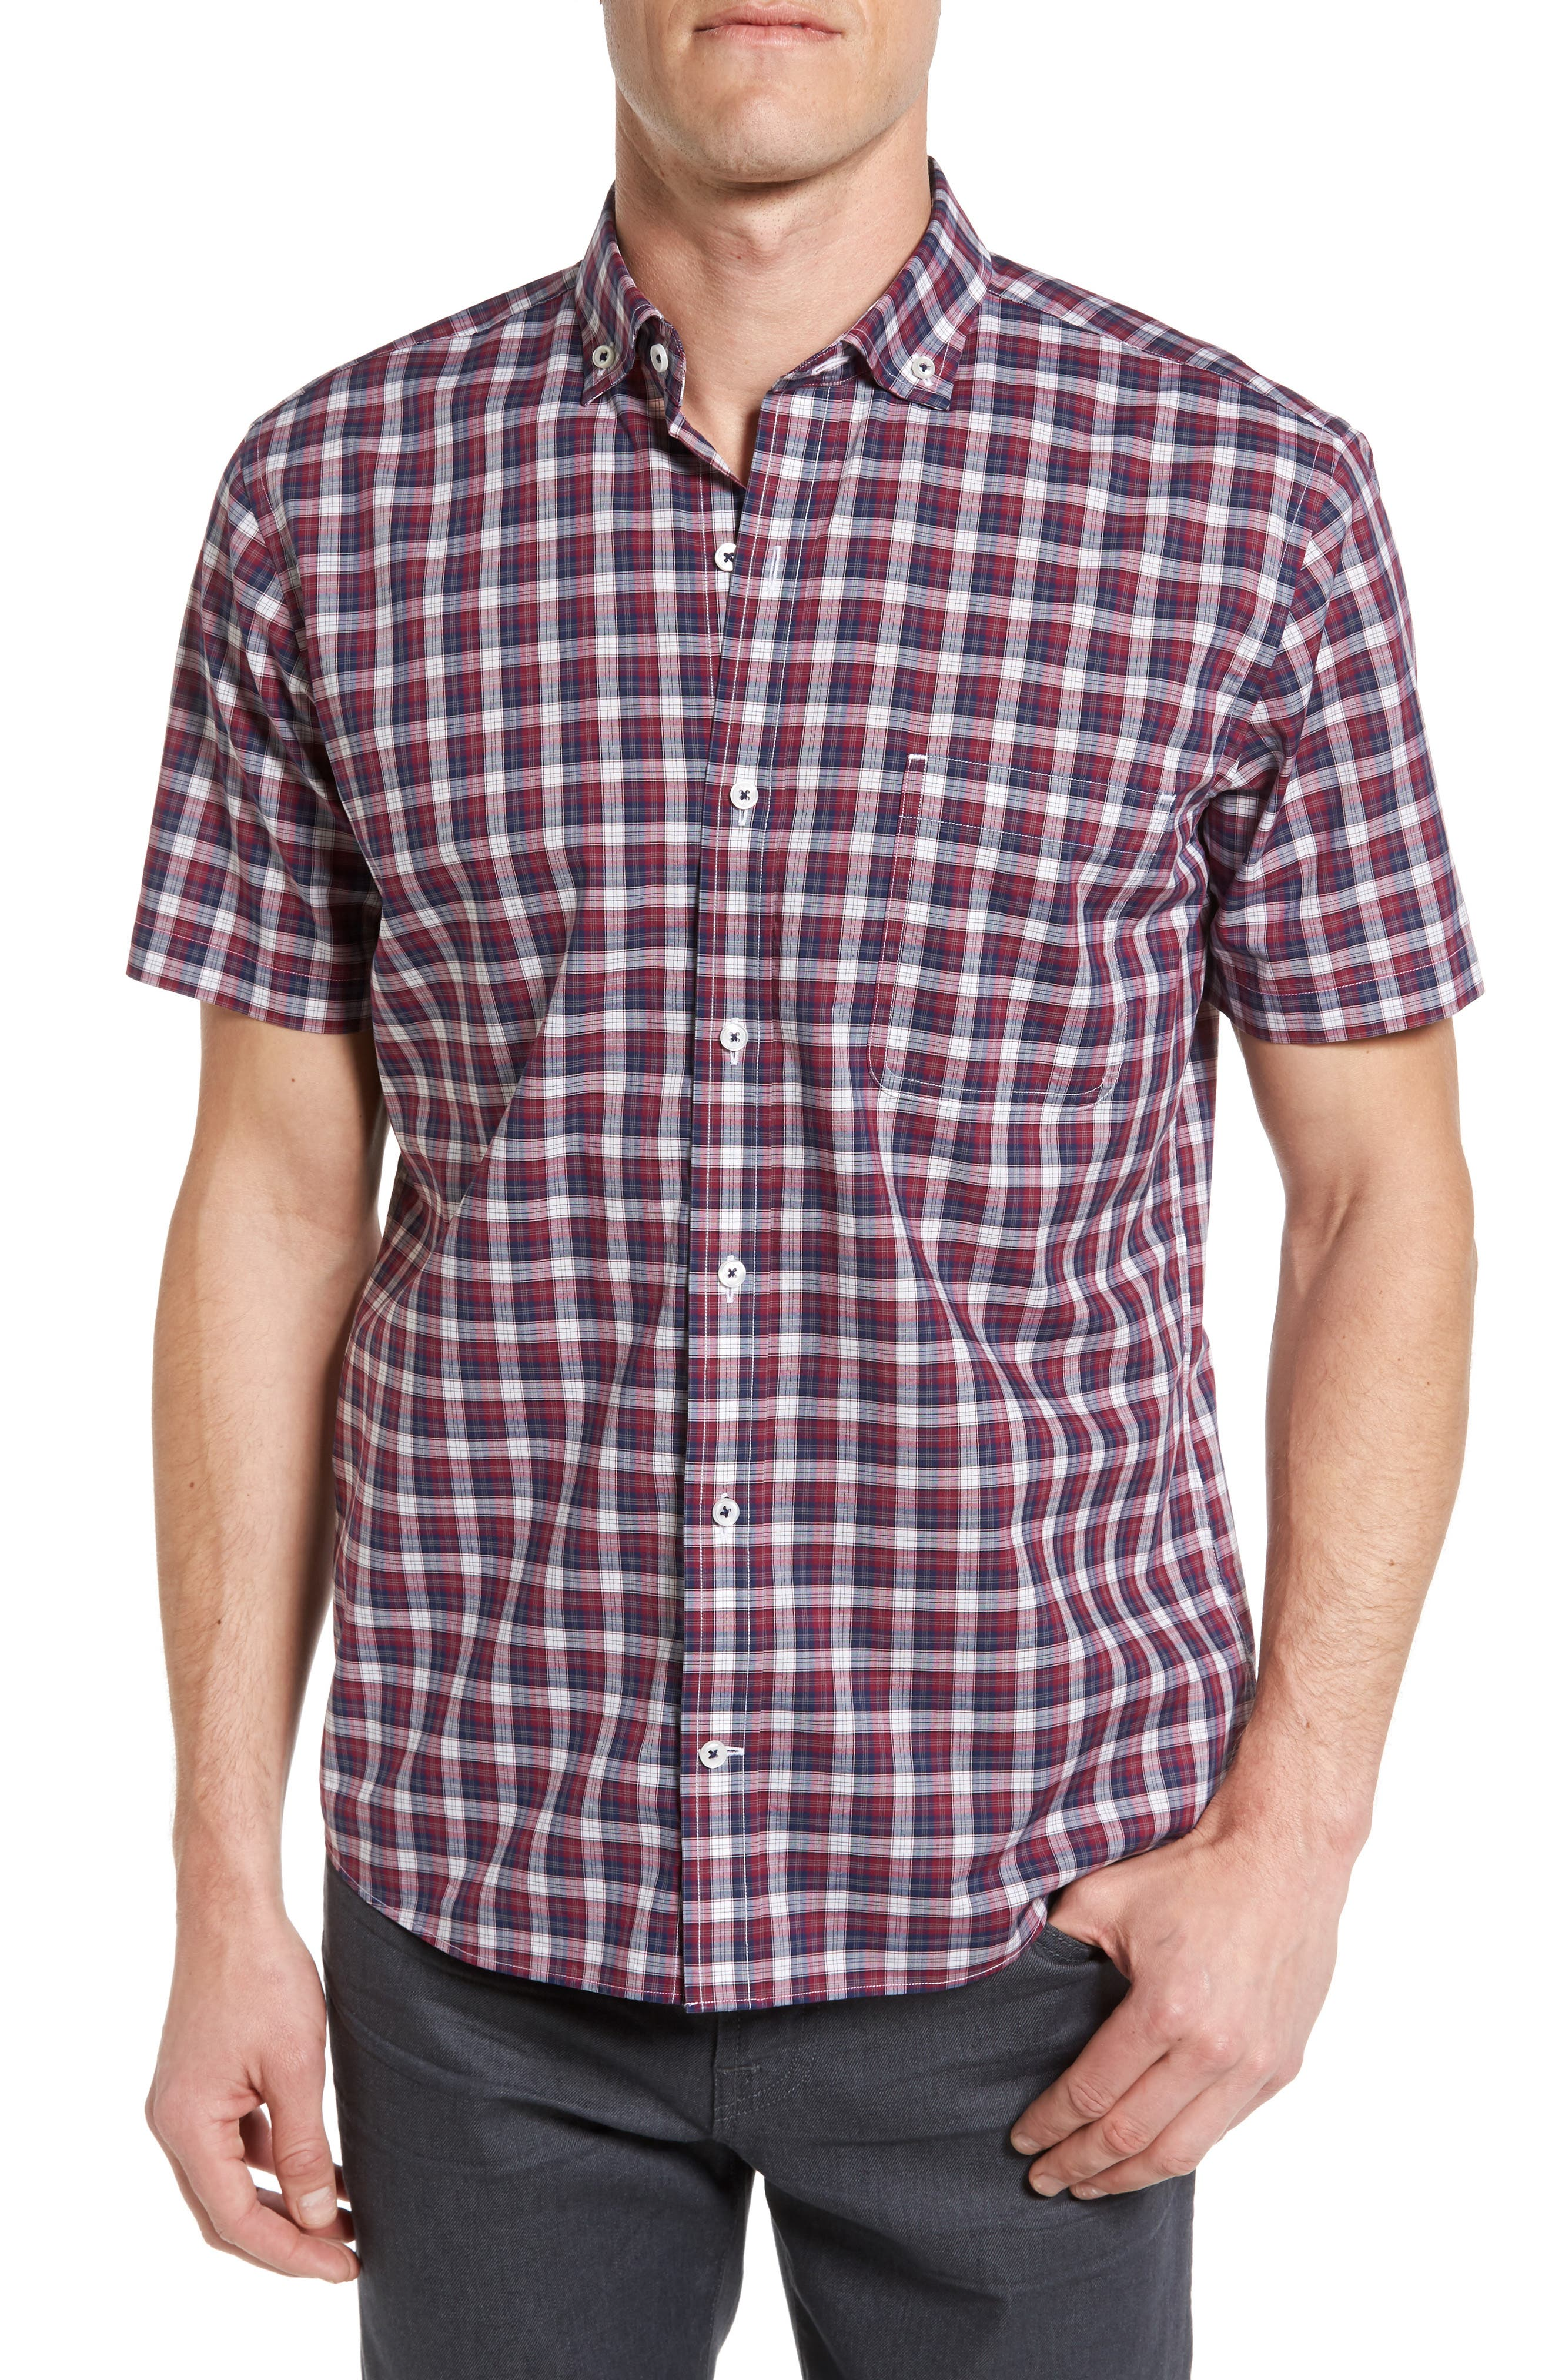 Maker & Company Tailored Fit Plaid Sport Shirt